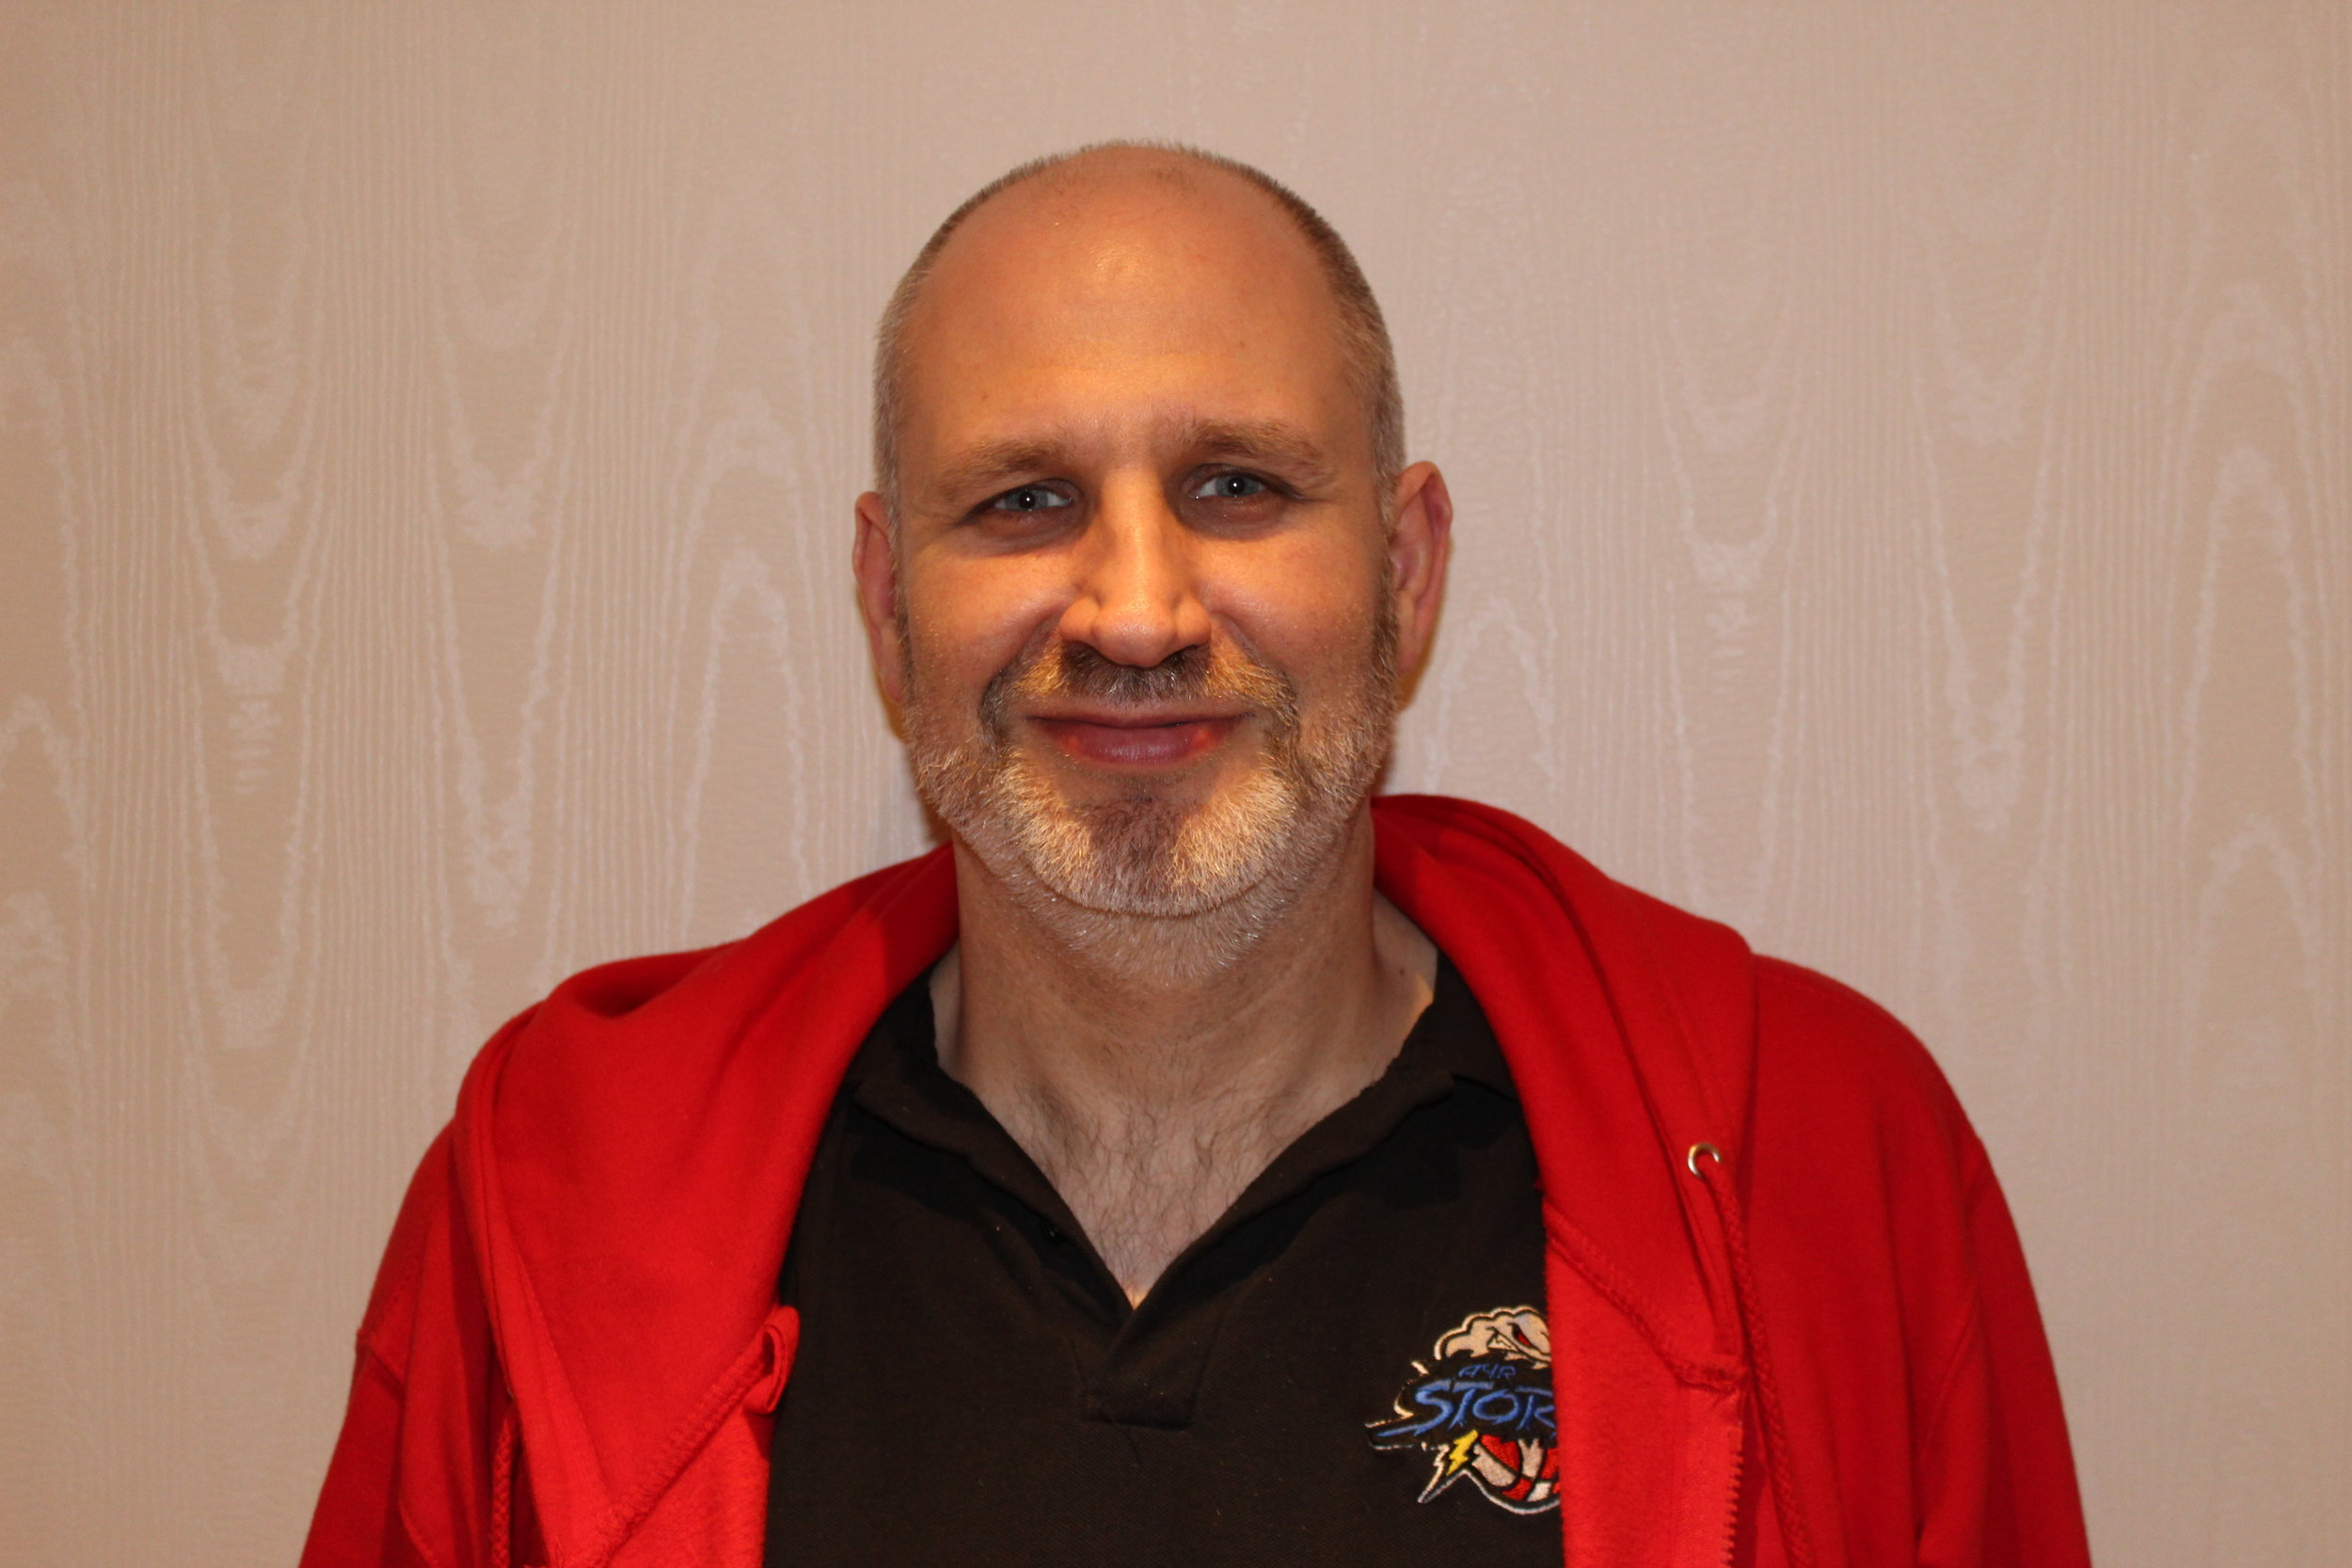 Chris Morrison - Chris is a devoted member of the club always working hard to help make our events, fundraising and other activities a huge success.  Chris also coaches our u18 Mens Team.